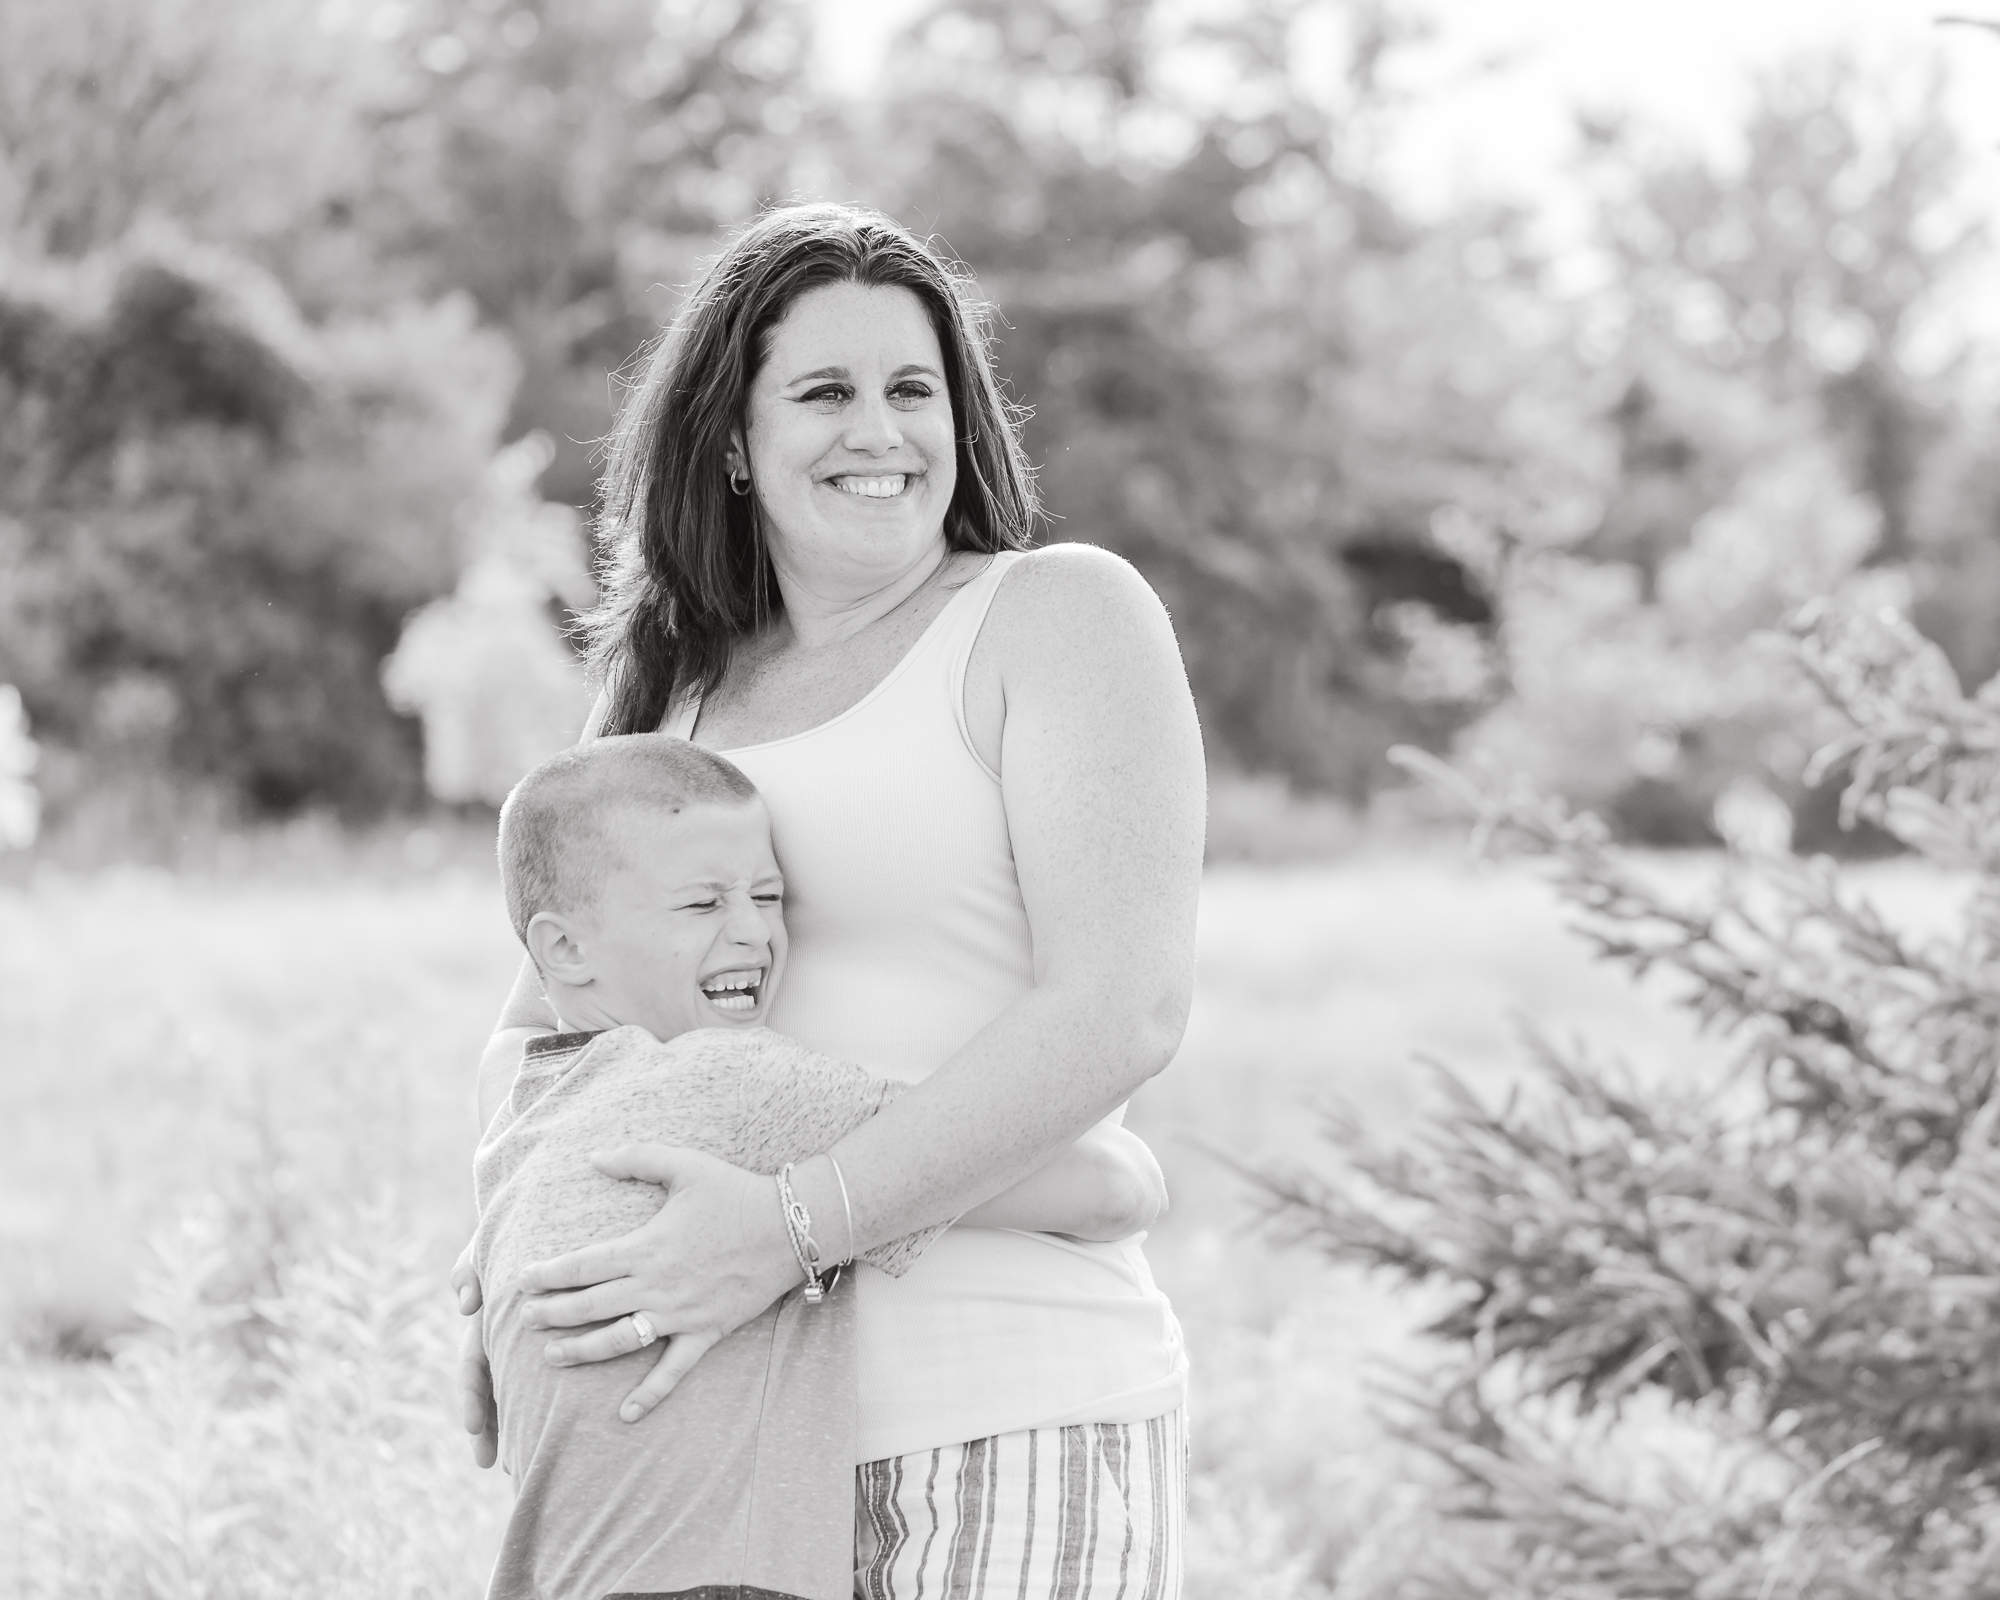 Summer_B Family Portraits Session_Mugrage Park_Medina_Ohio-43.jpg